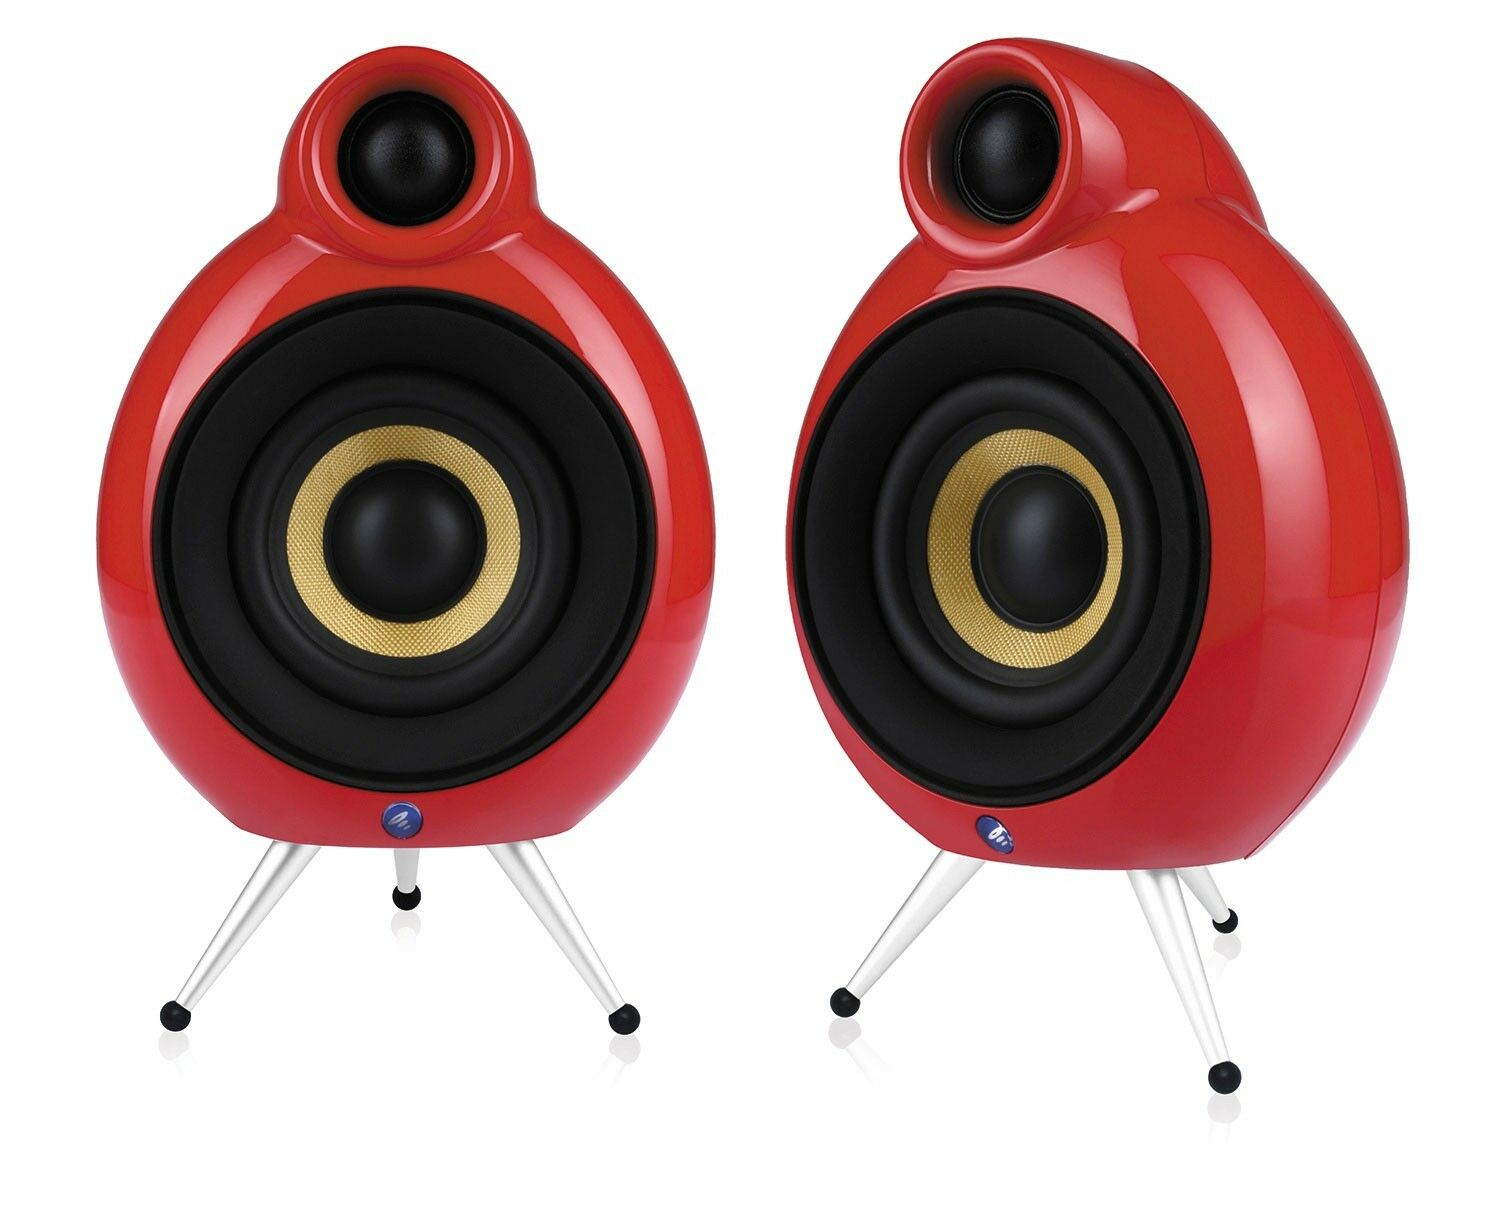 Podspeakers MicroPod blueetooth Red Wireless Active Speakers (Pair)